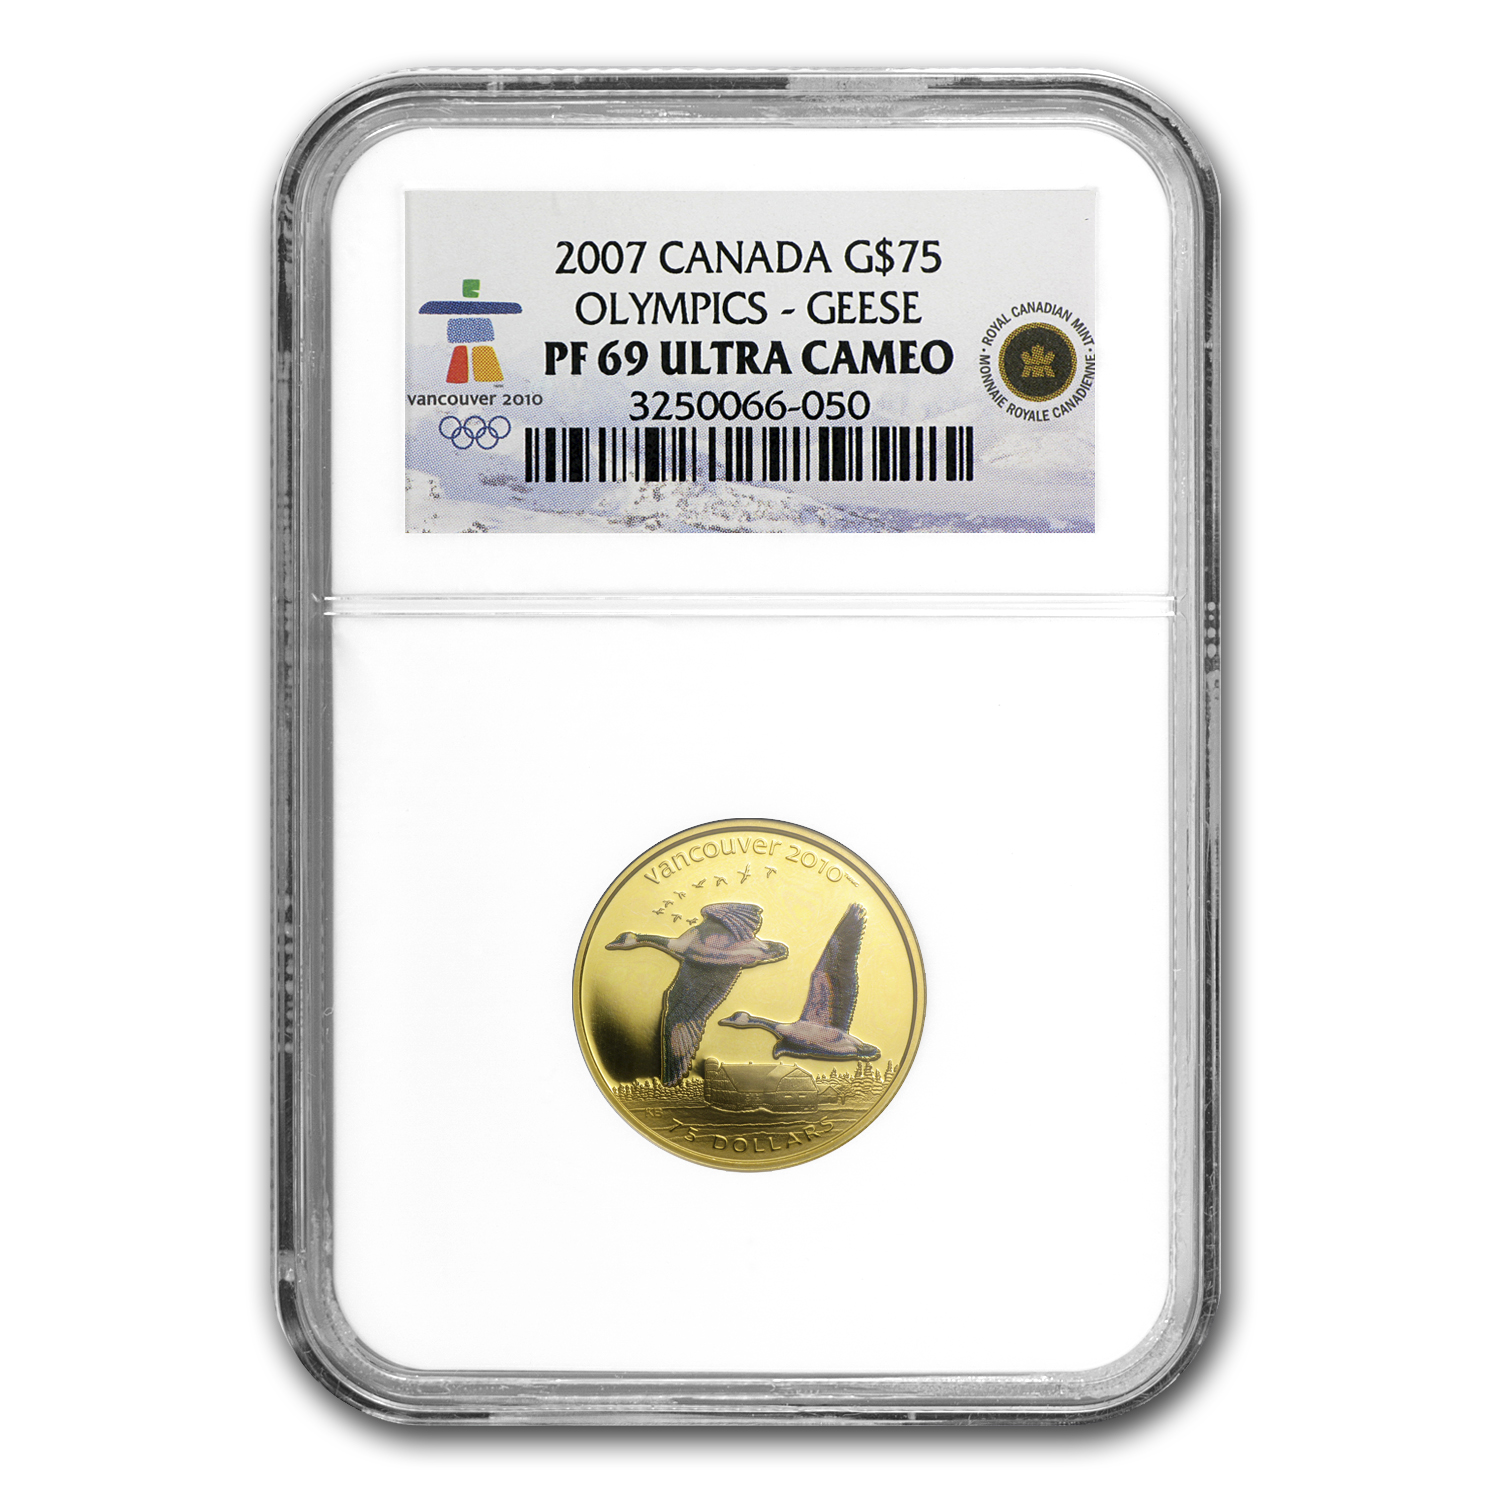 2007 Canada Gold $75 Olympics Canada Geese PF-69 NGC